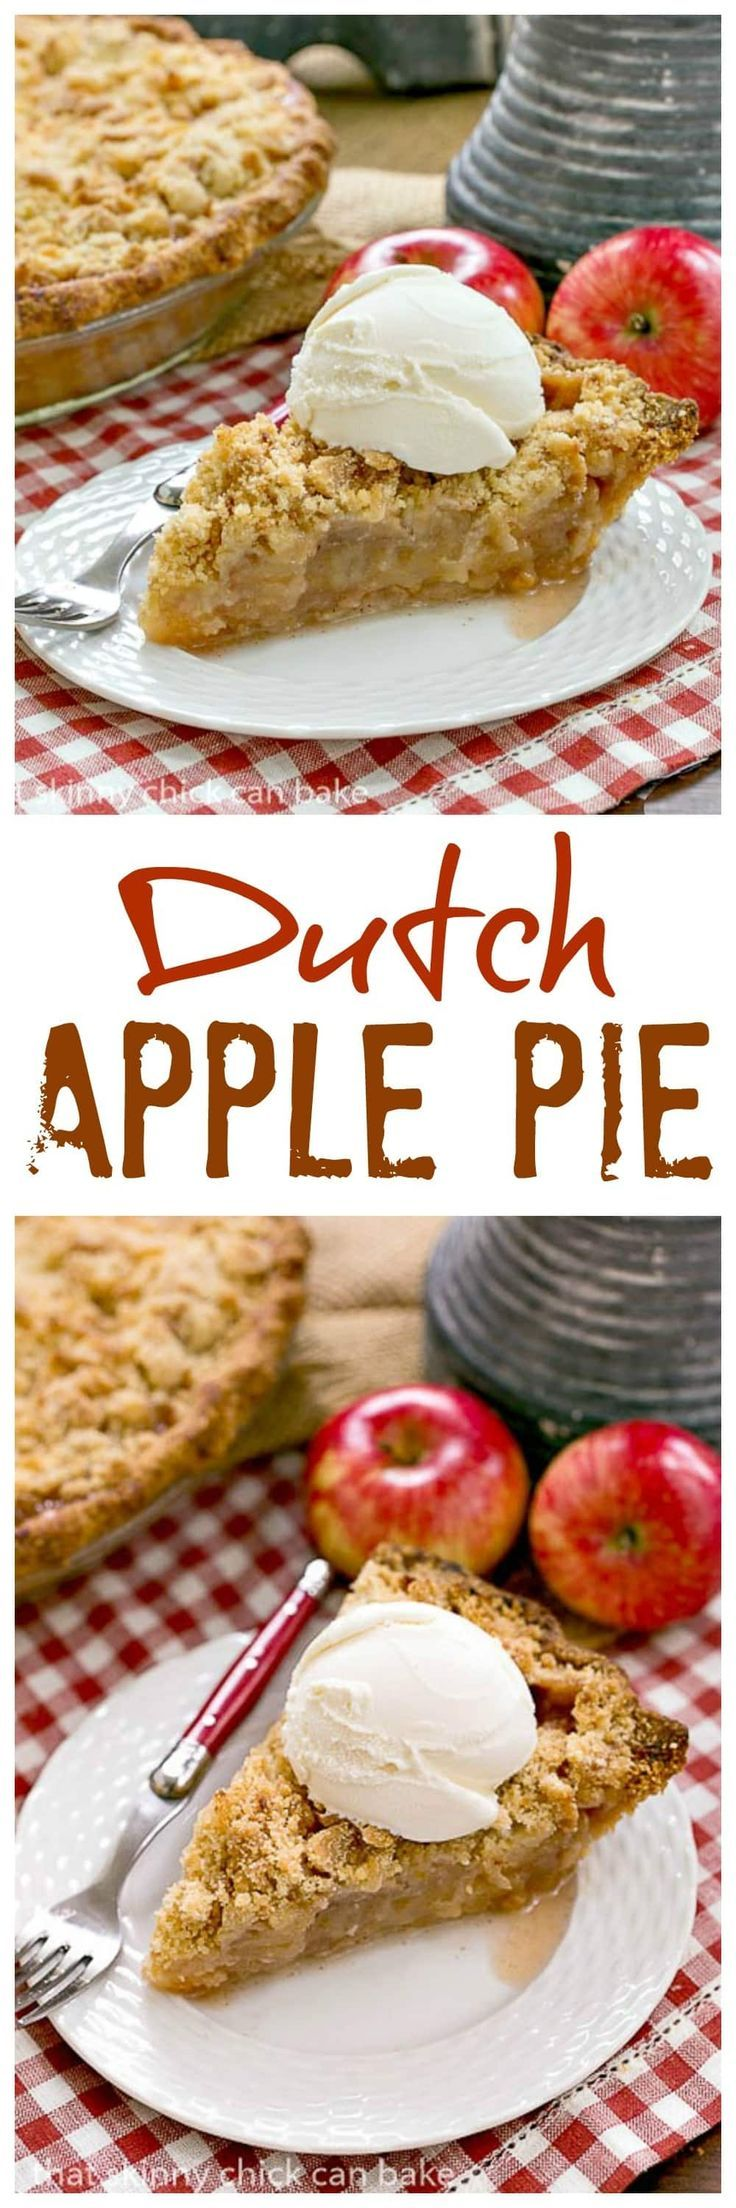 Dutch Apple Pie | #applepie Cinnamon spiced apples in a pastry shell with a streusel topping